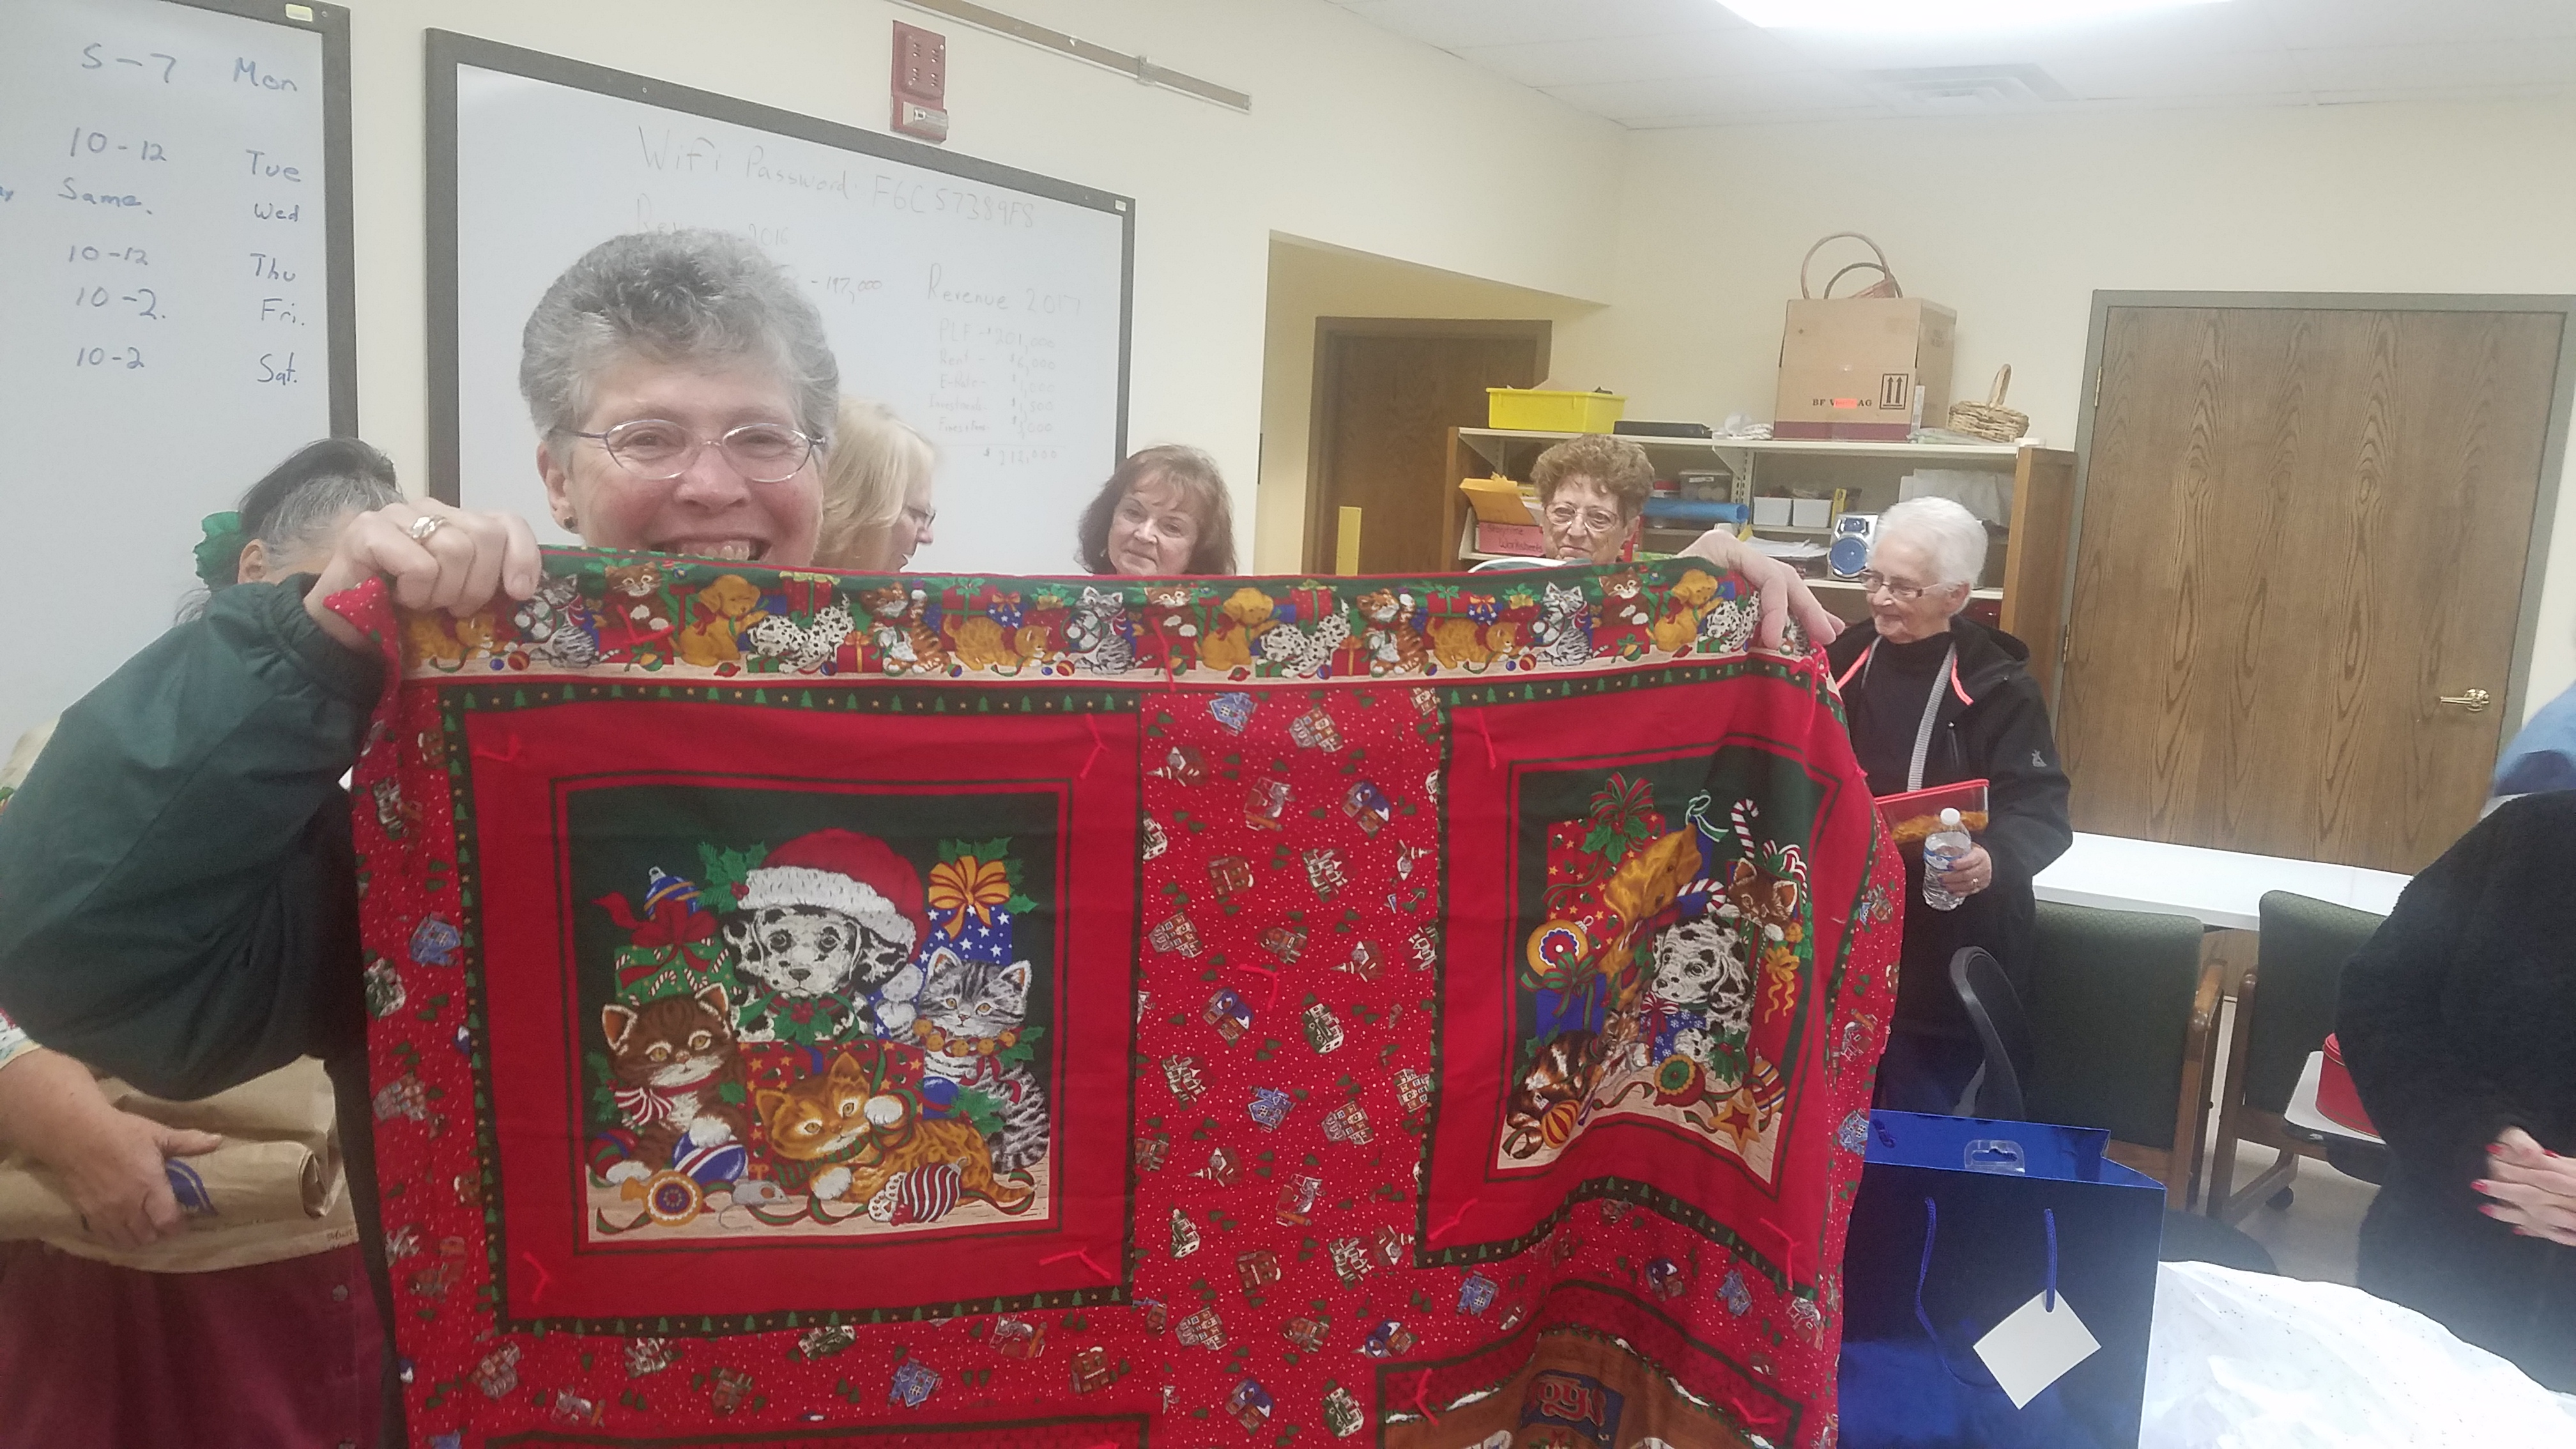 Congratulations to Jo Ann Azbell for winning the November Ladies Night Out door prize!  Her prize was a handcrated quilt made and donated by Sue Lucas and Pat Tanguay.